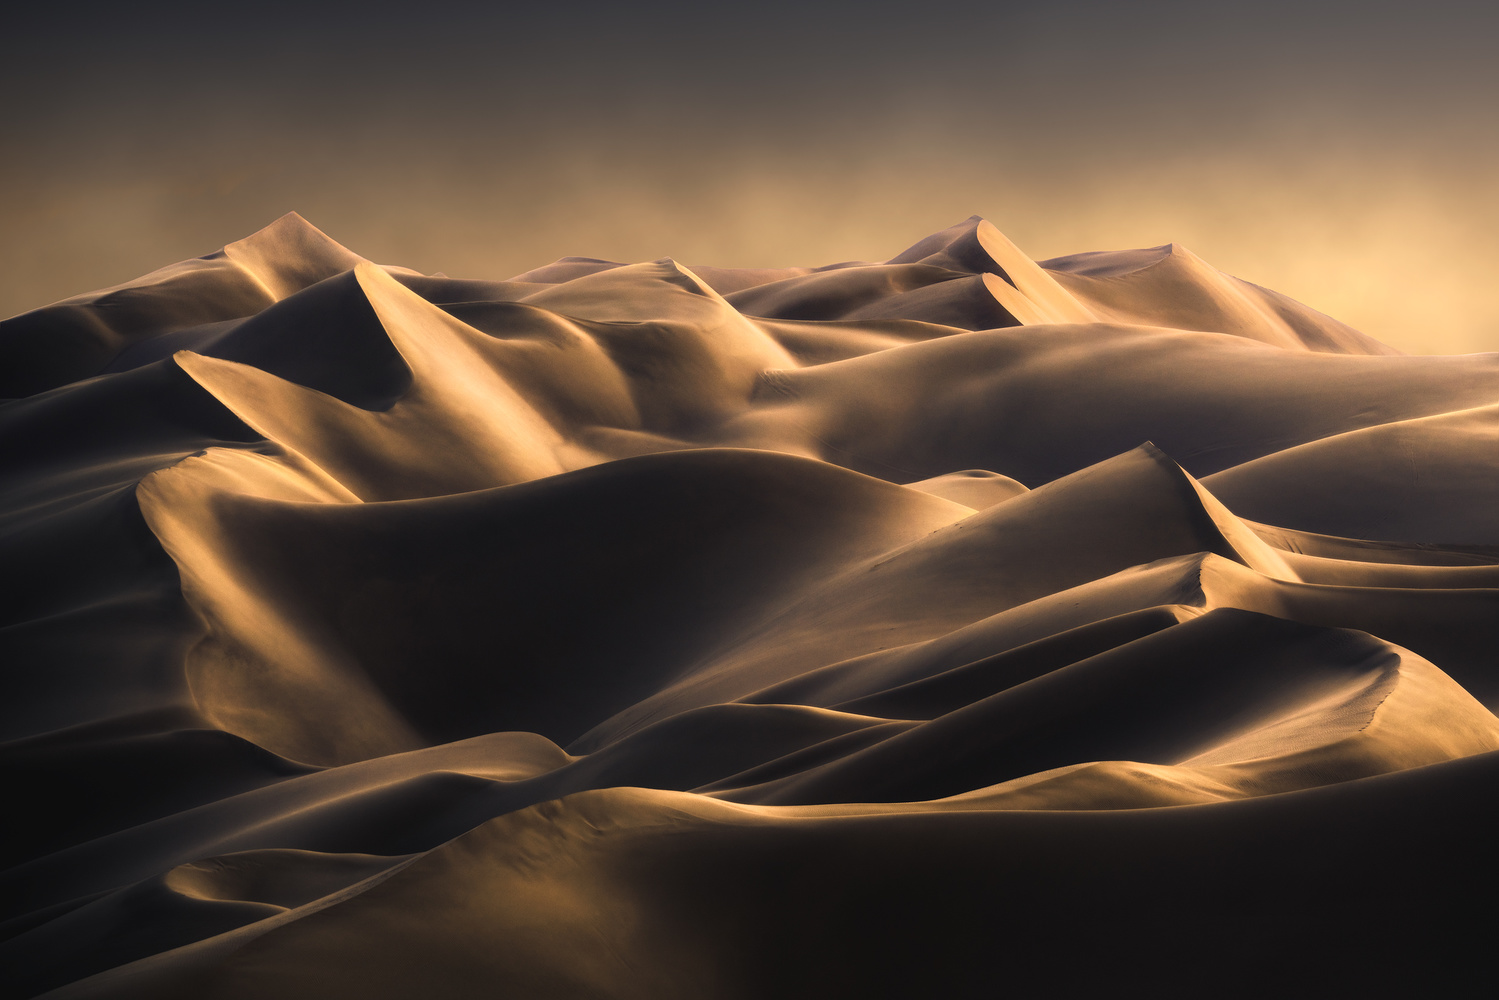 Lines by Hossein Sedghi